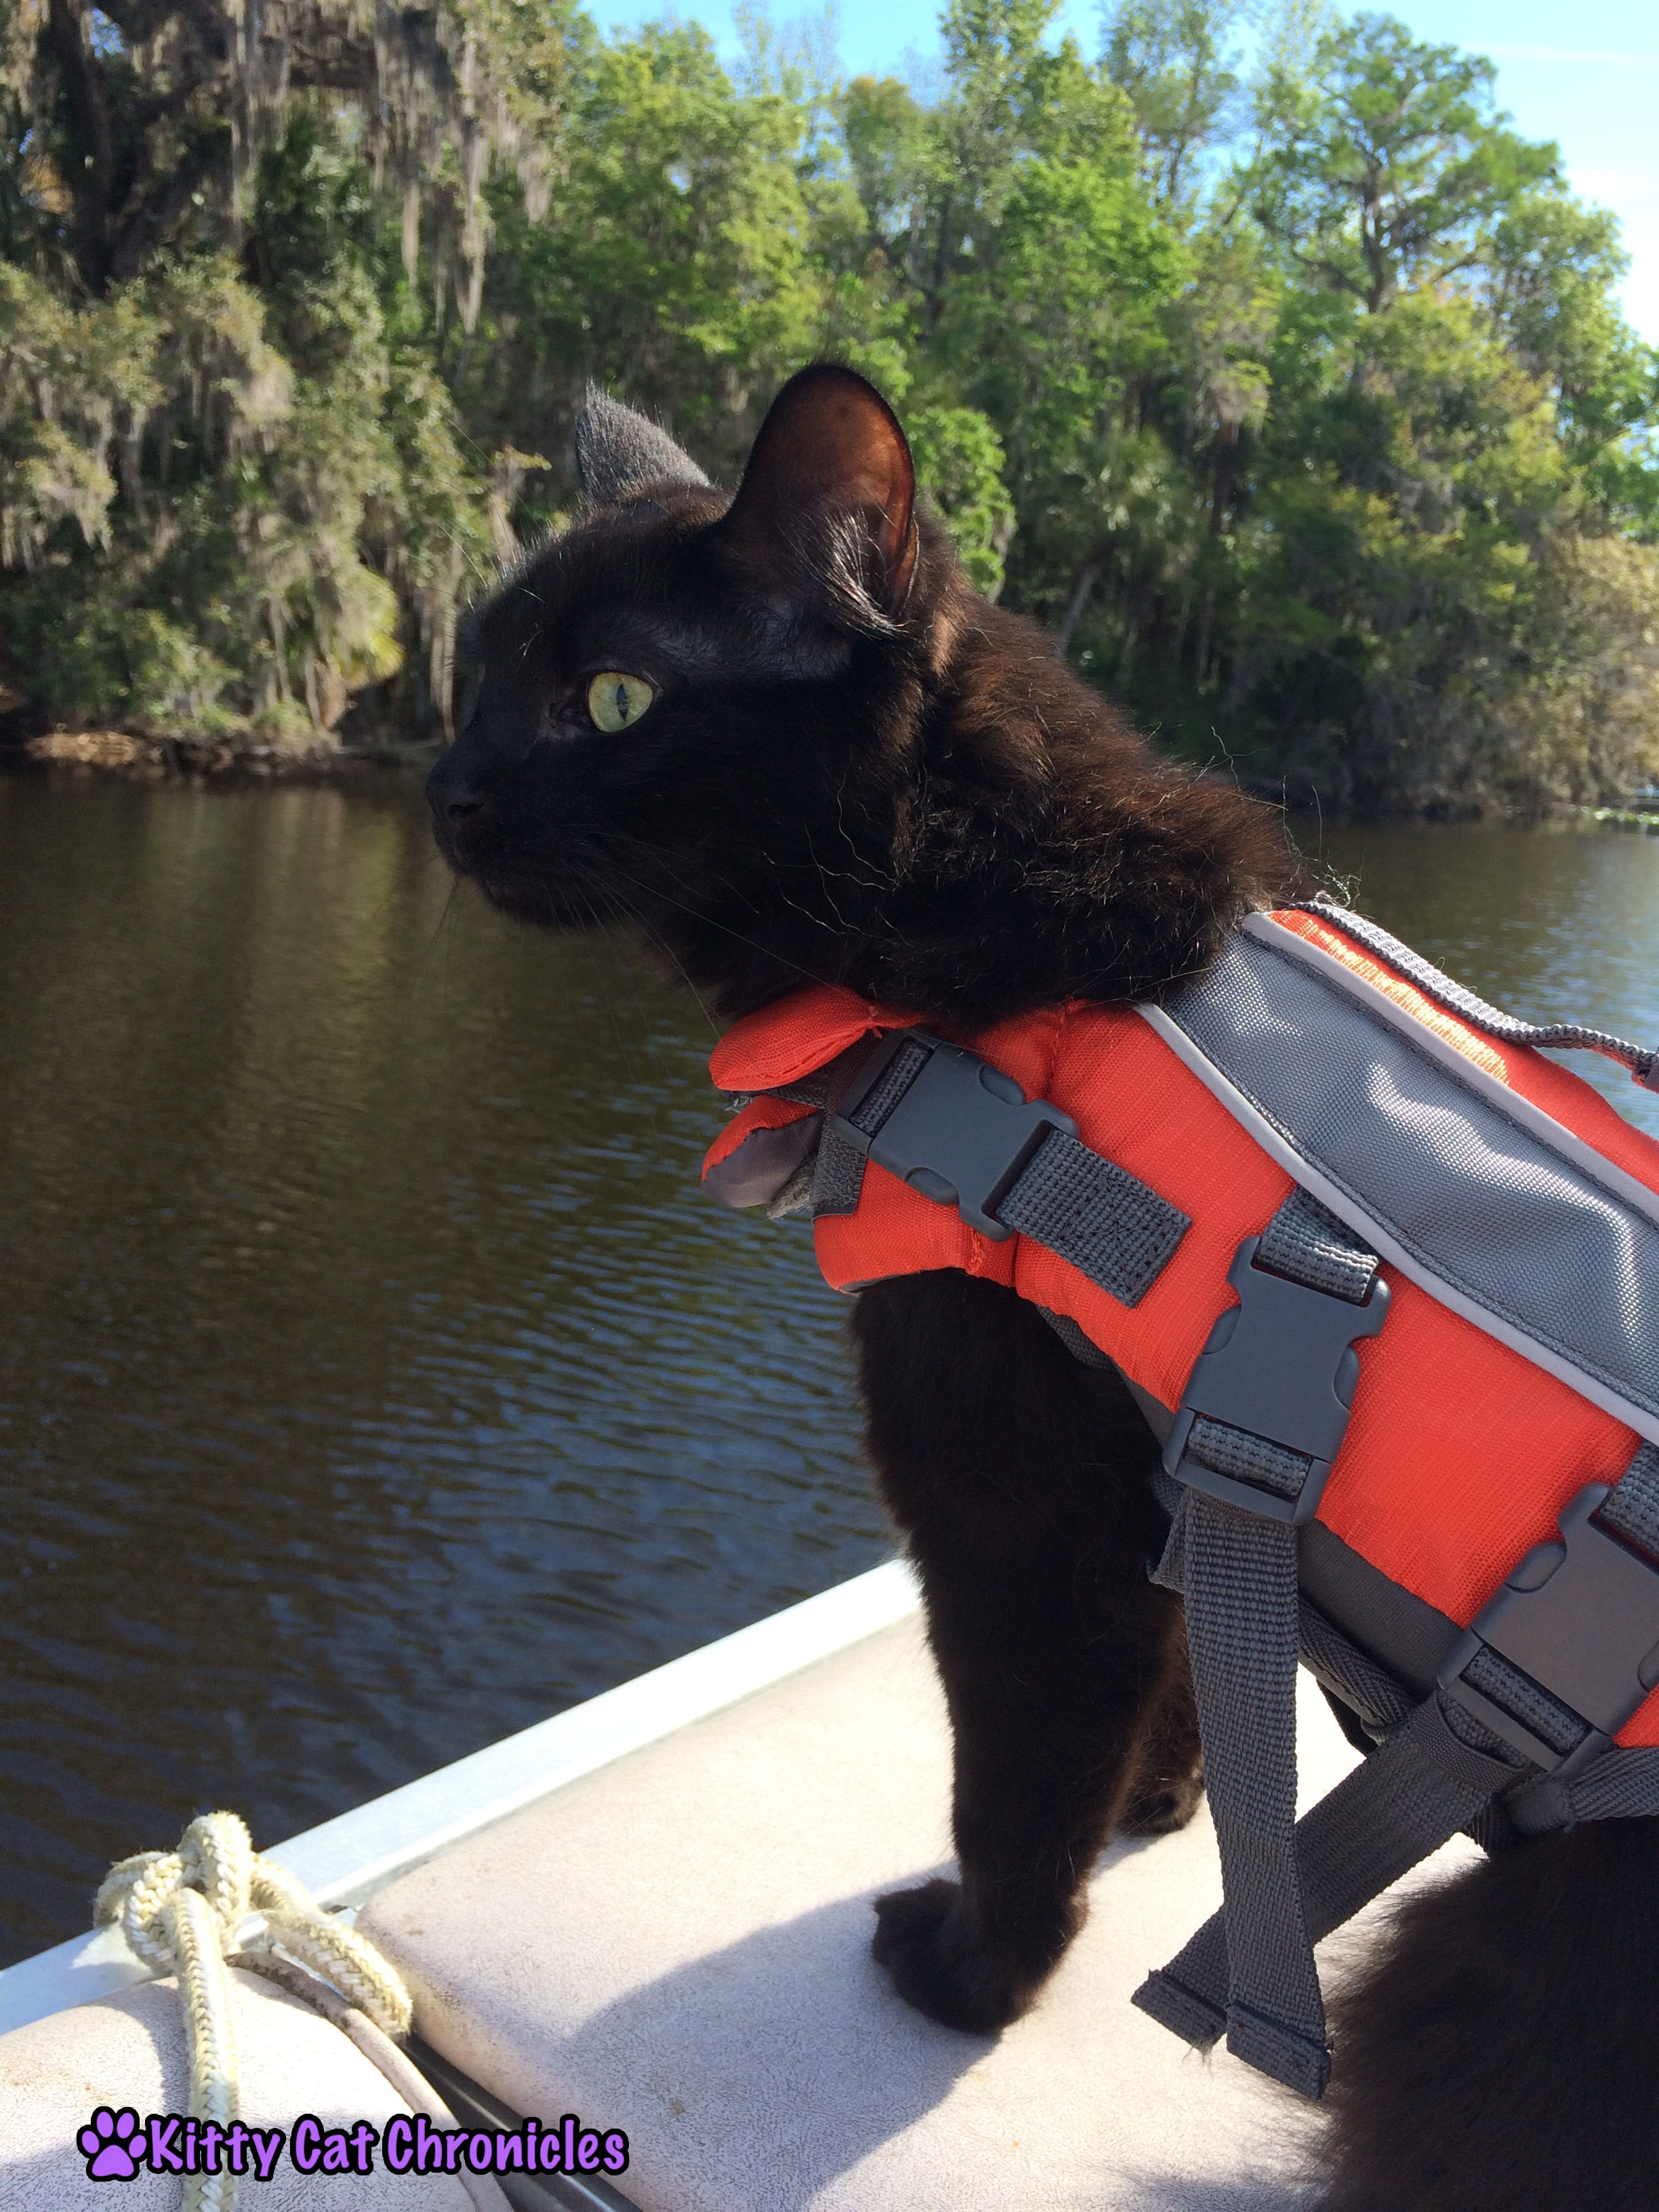 Wordless Wednesday: Welaka, Kylo Ren on a Boat